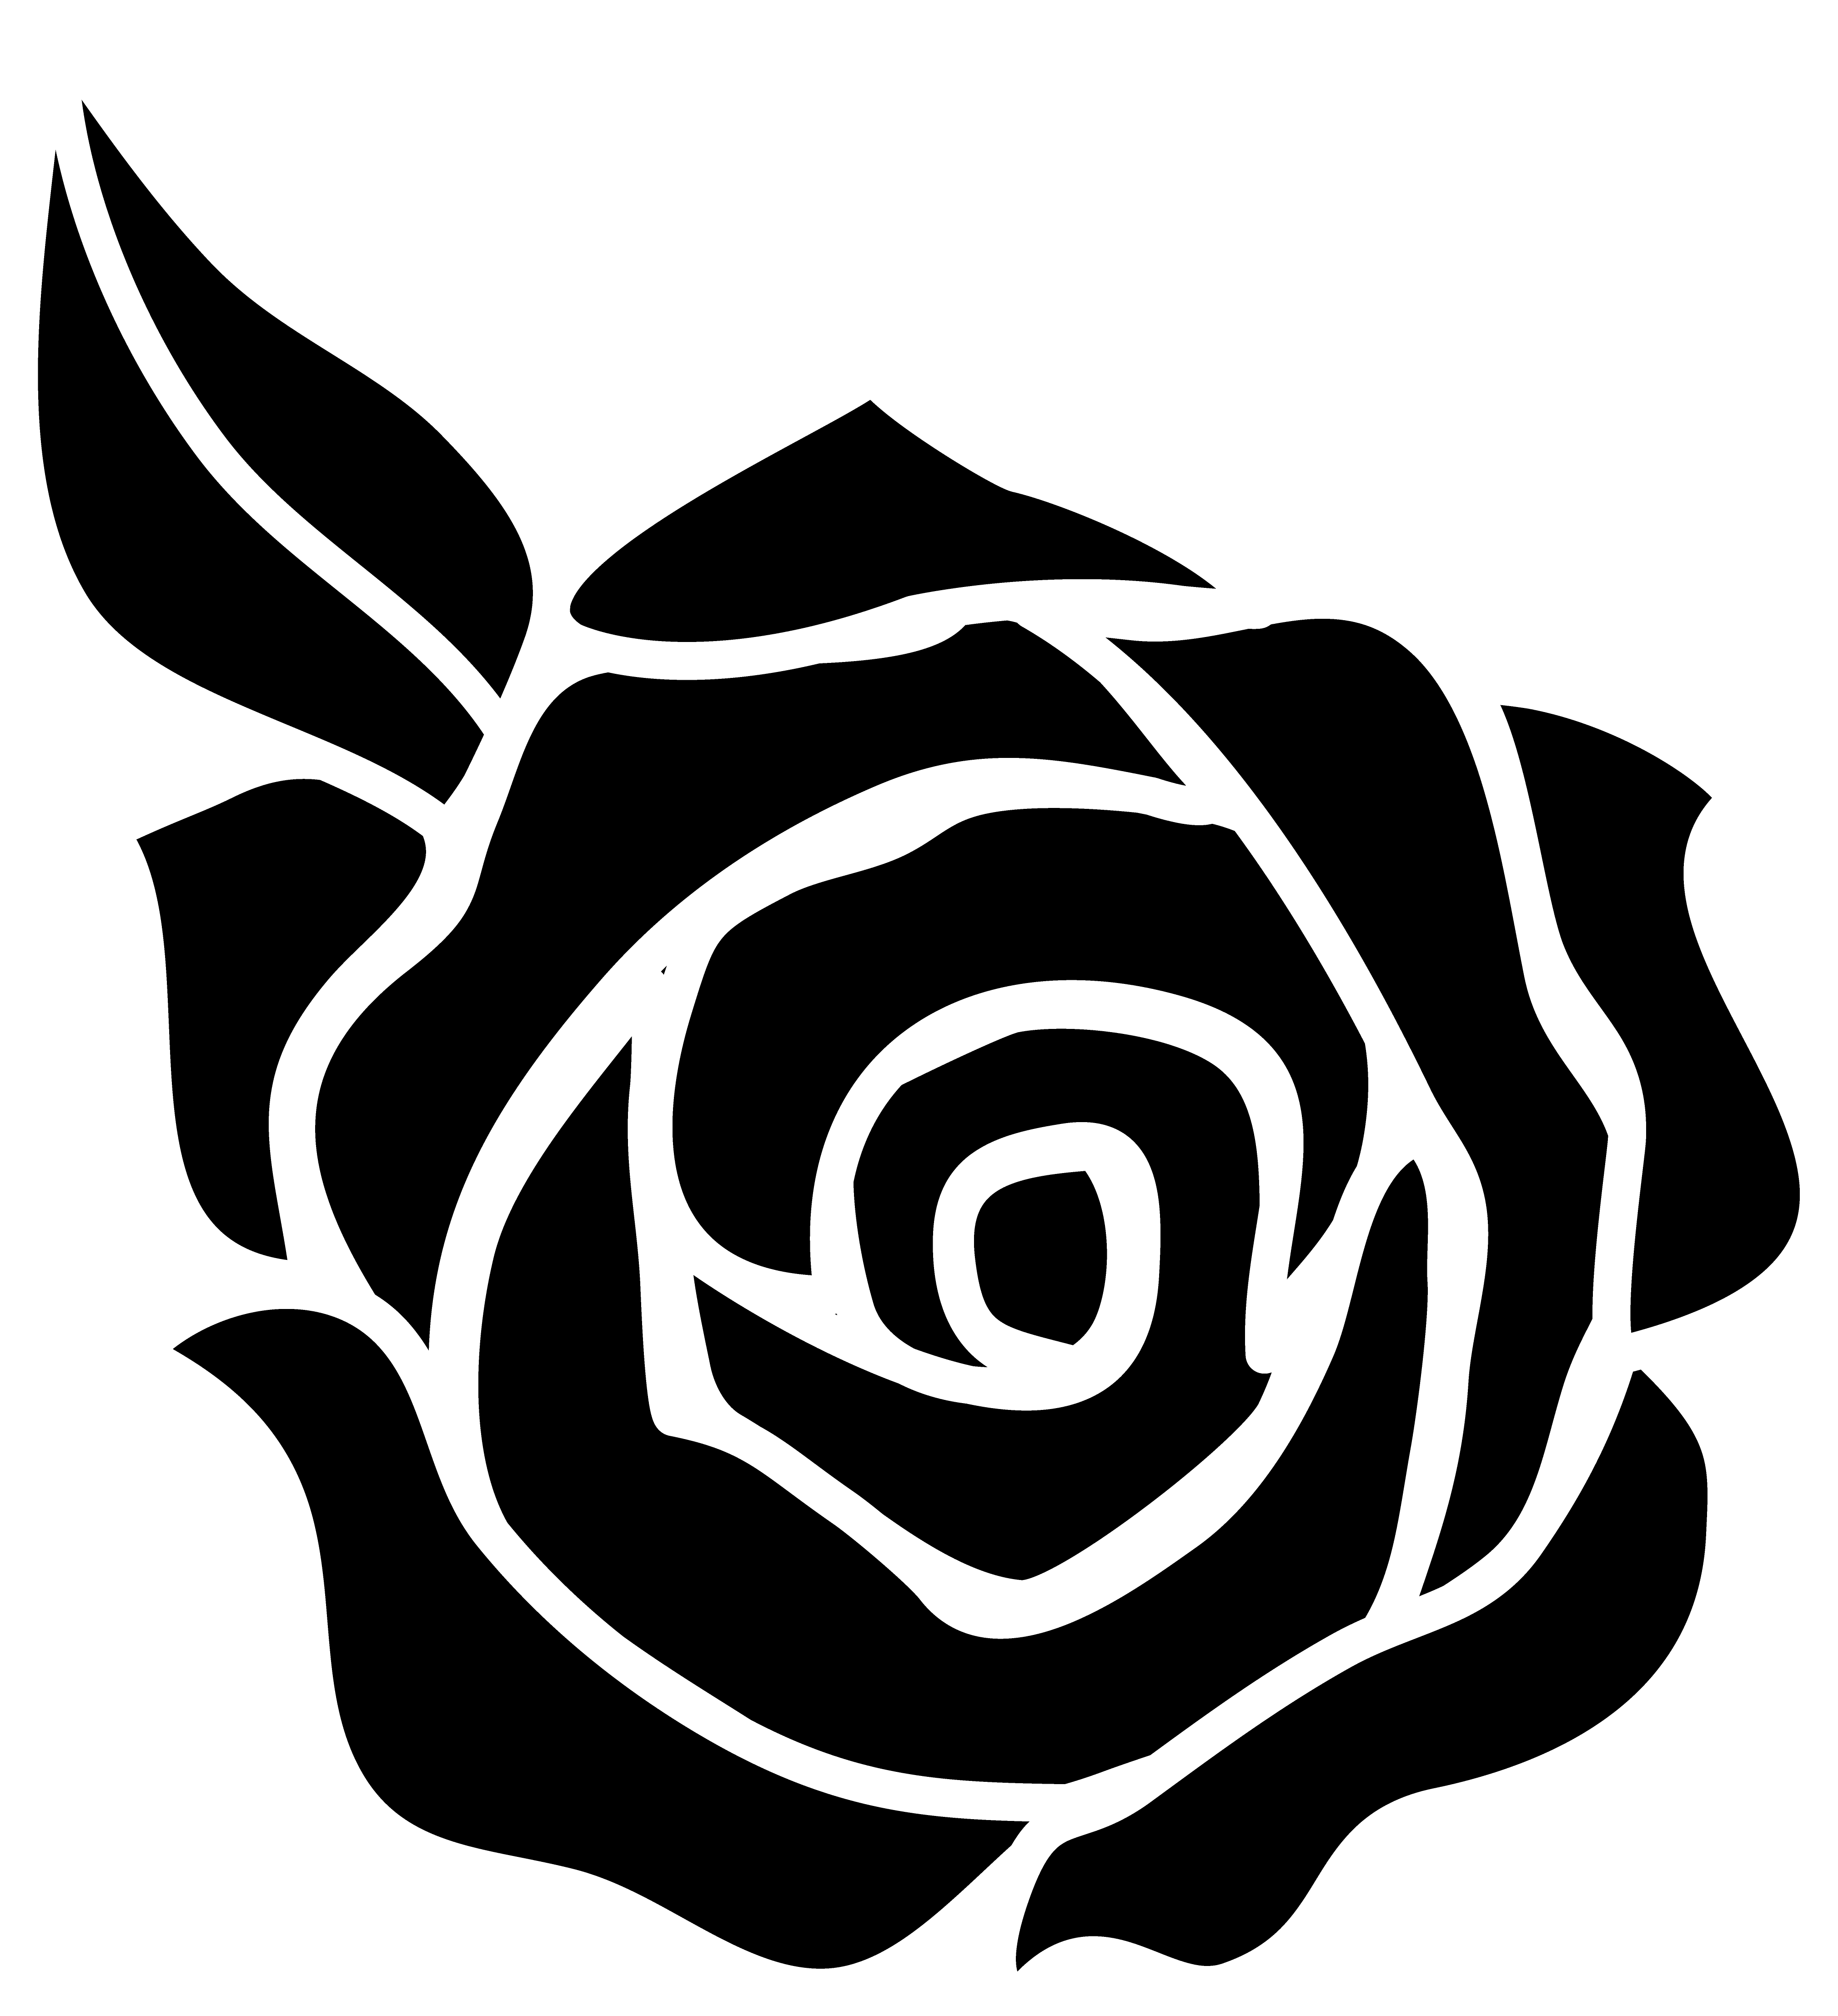 Outline vector rose. Horseshoe and vinyl decal